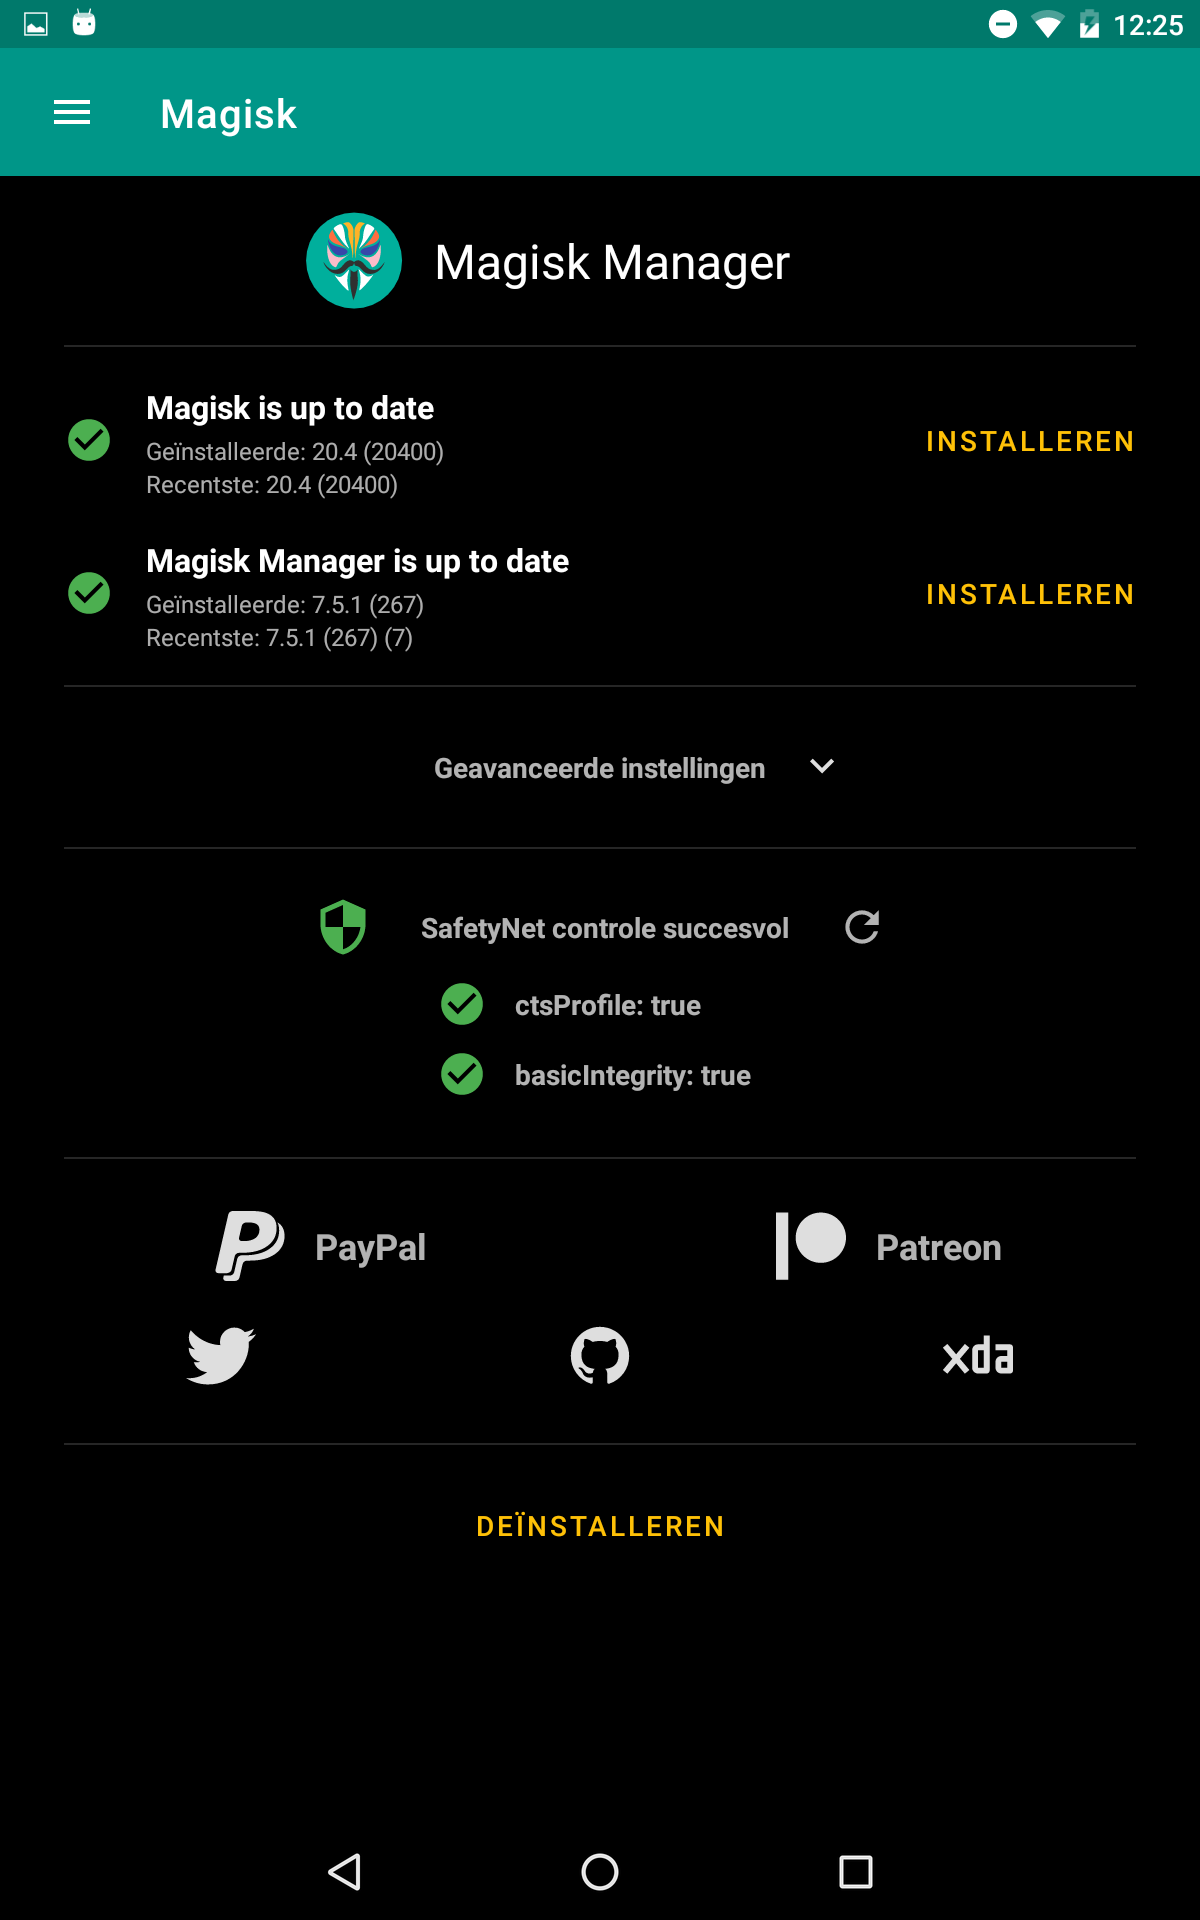 Magisk Manager SafetyNet controle